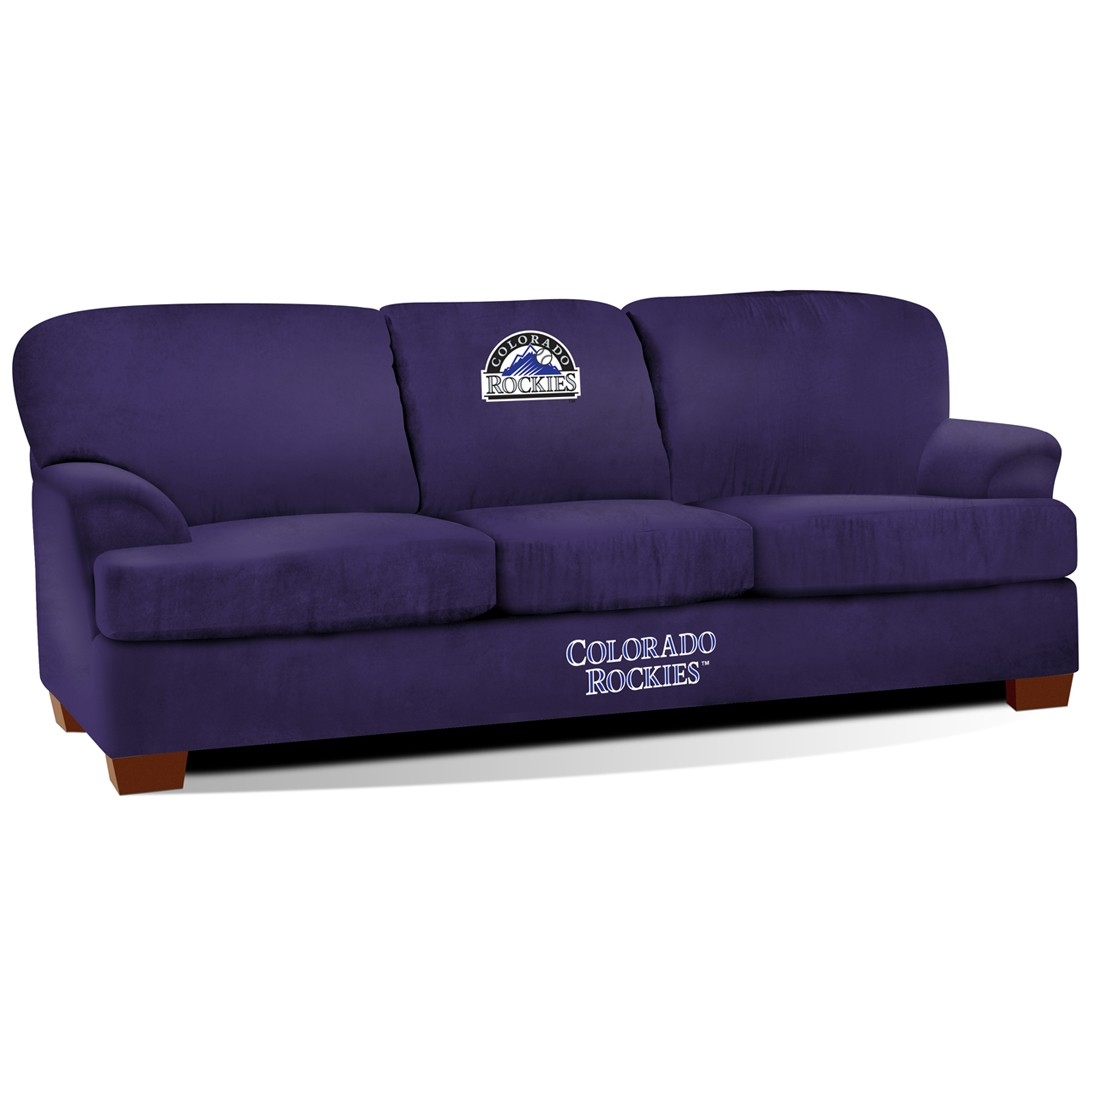 Colorado  First Team Microfiber Sofa - 205-2023 - Toys Tables And Chairs 205-2023